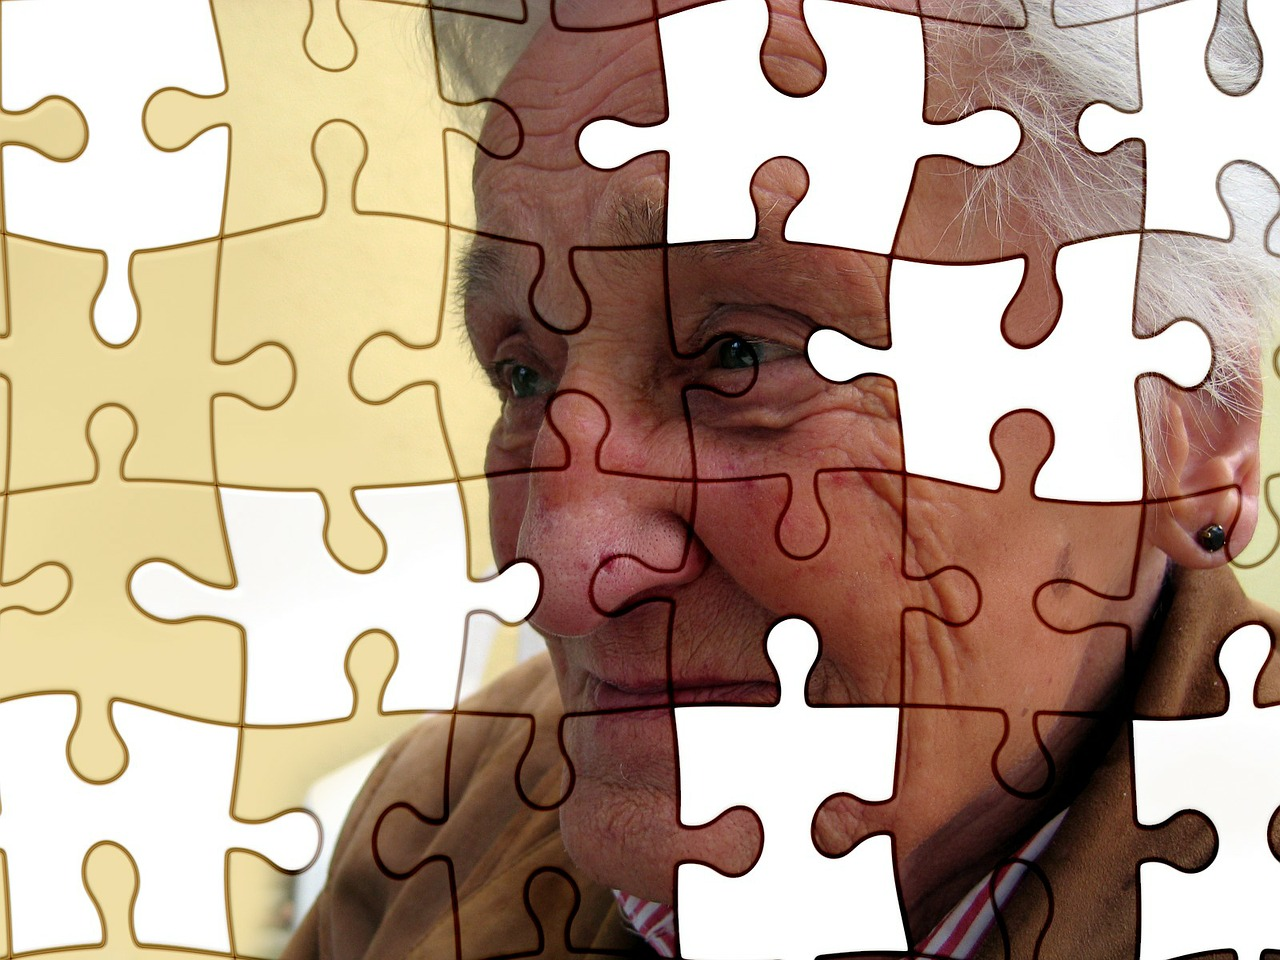 Experts estimate that by 2025, that number will exceed 130,000. With more than 2,026 deaths in 2013, Alzheimer's is the sixth leading cause of death in Missouri.